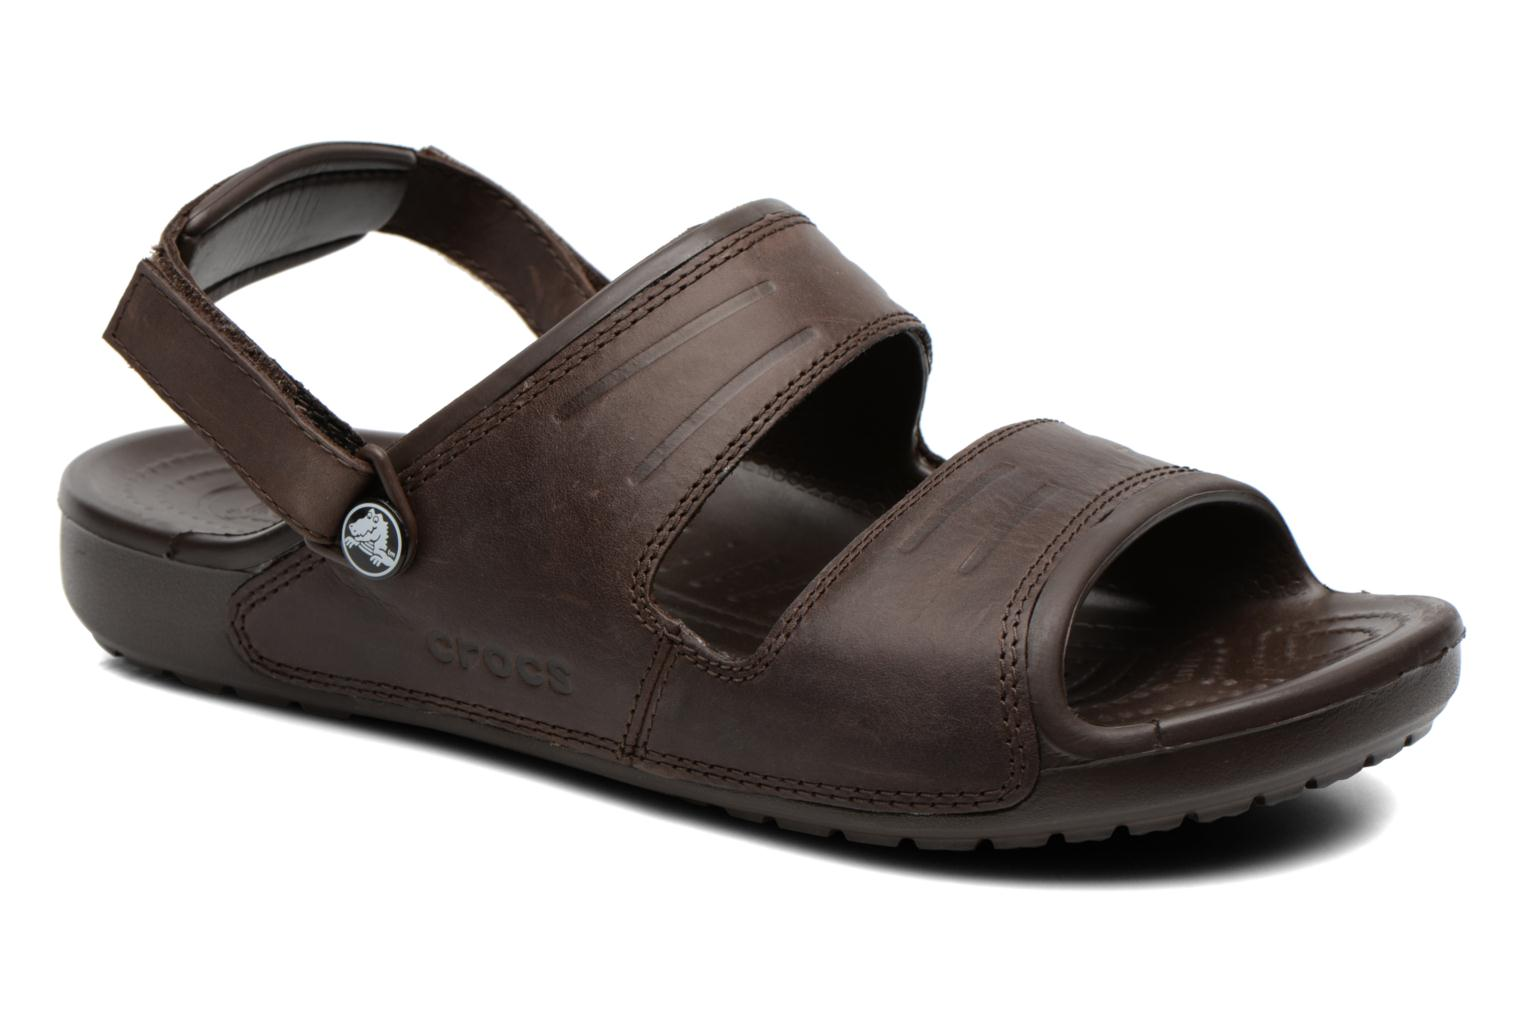 Sandalen Yukon Two-Strap Sandal M by Crocs